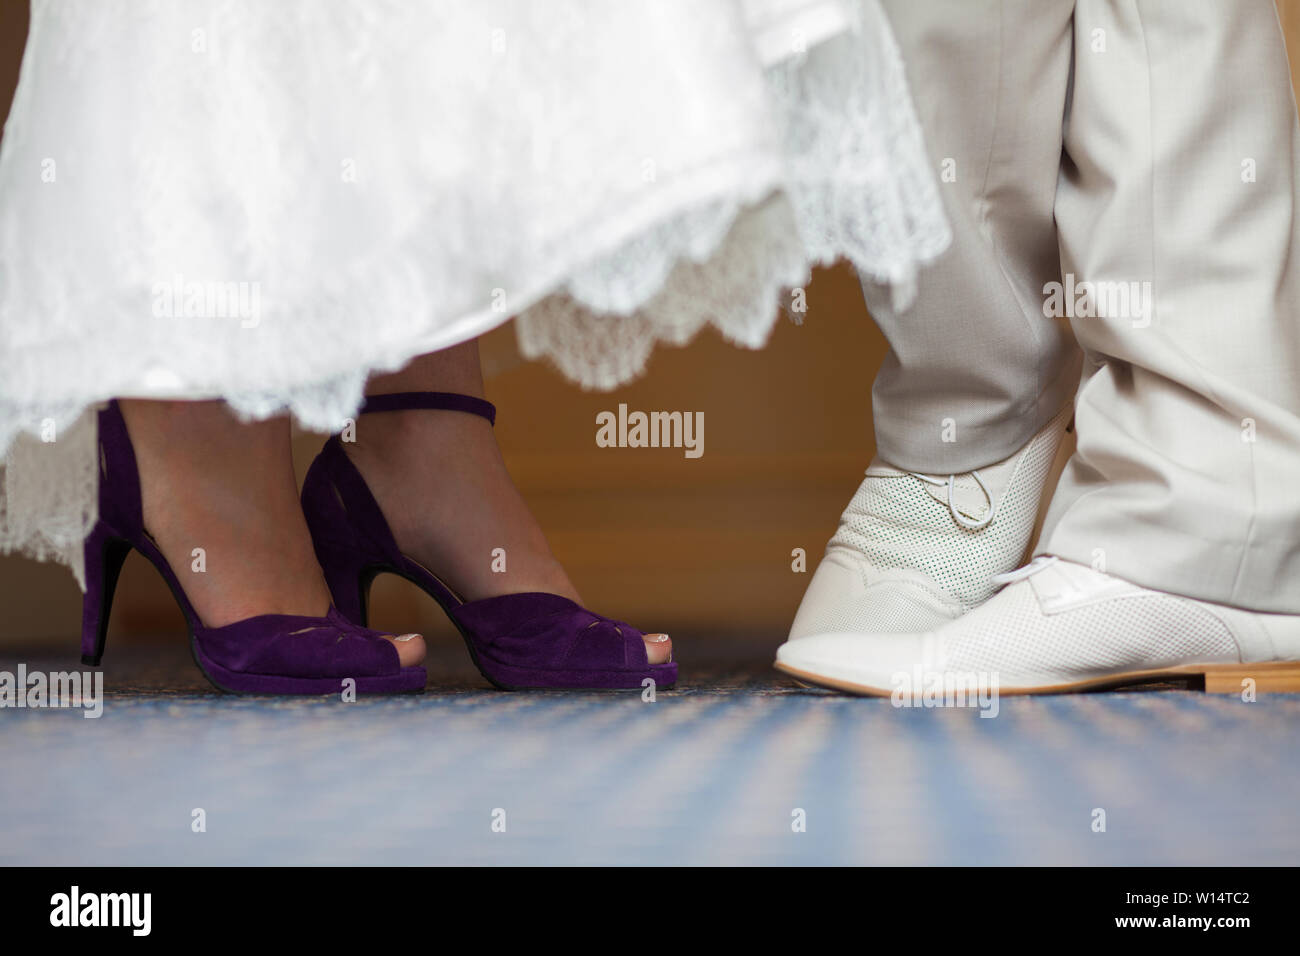 Legs Of The Groom In White Shoes And Trousers And Brides In Purple